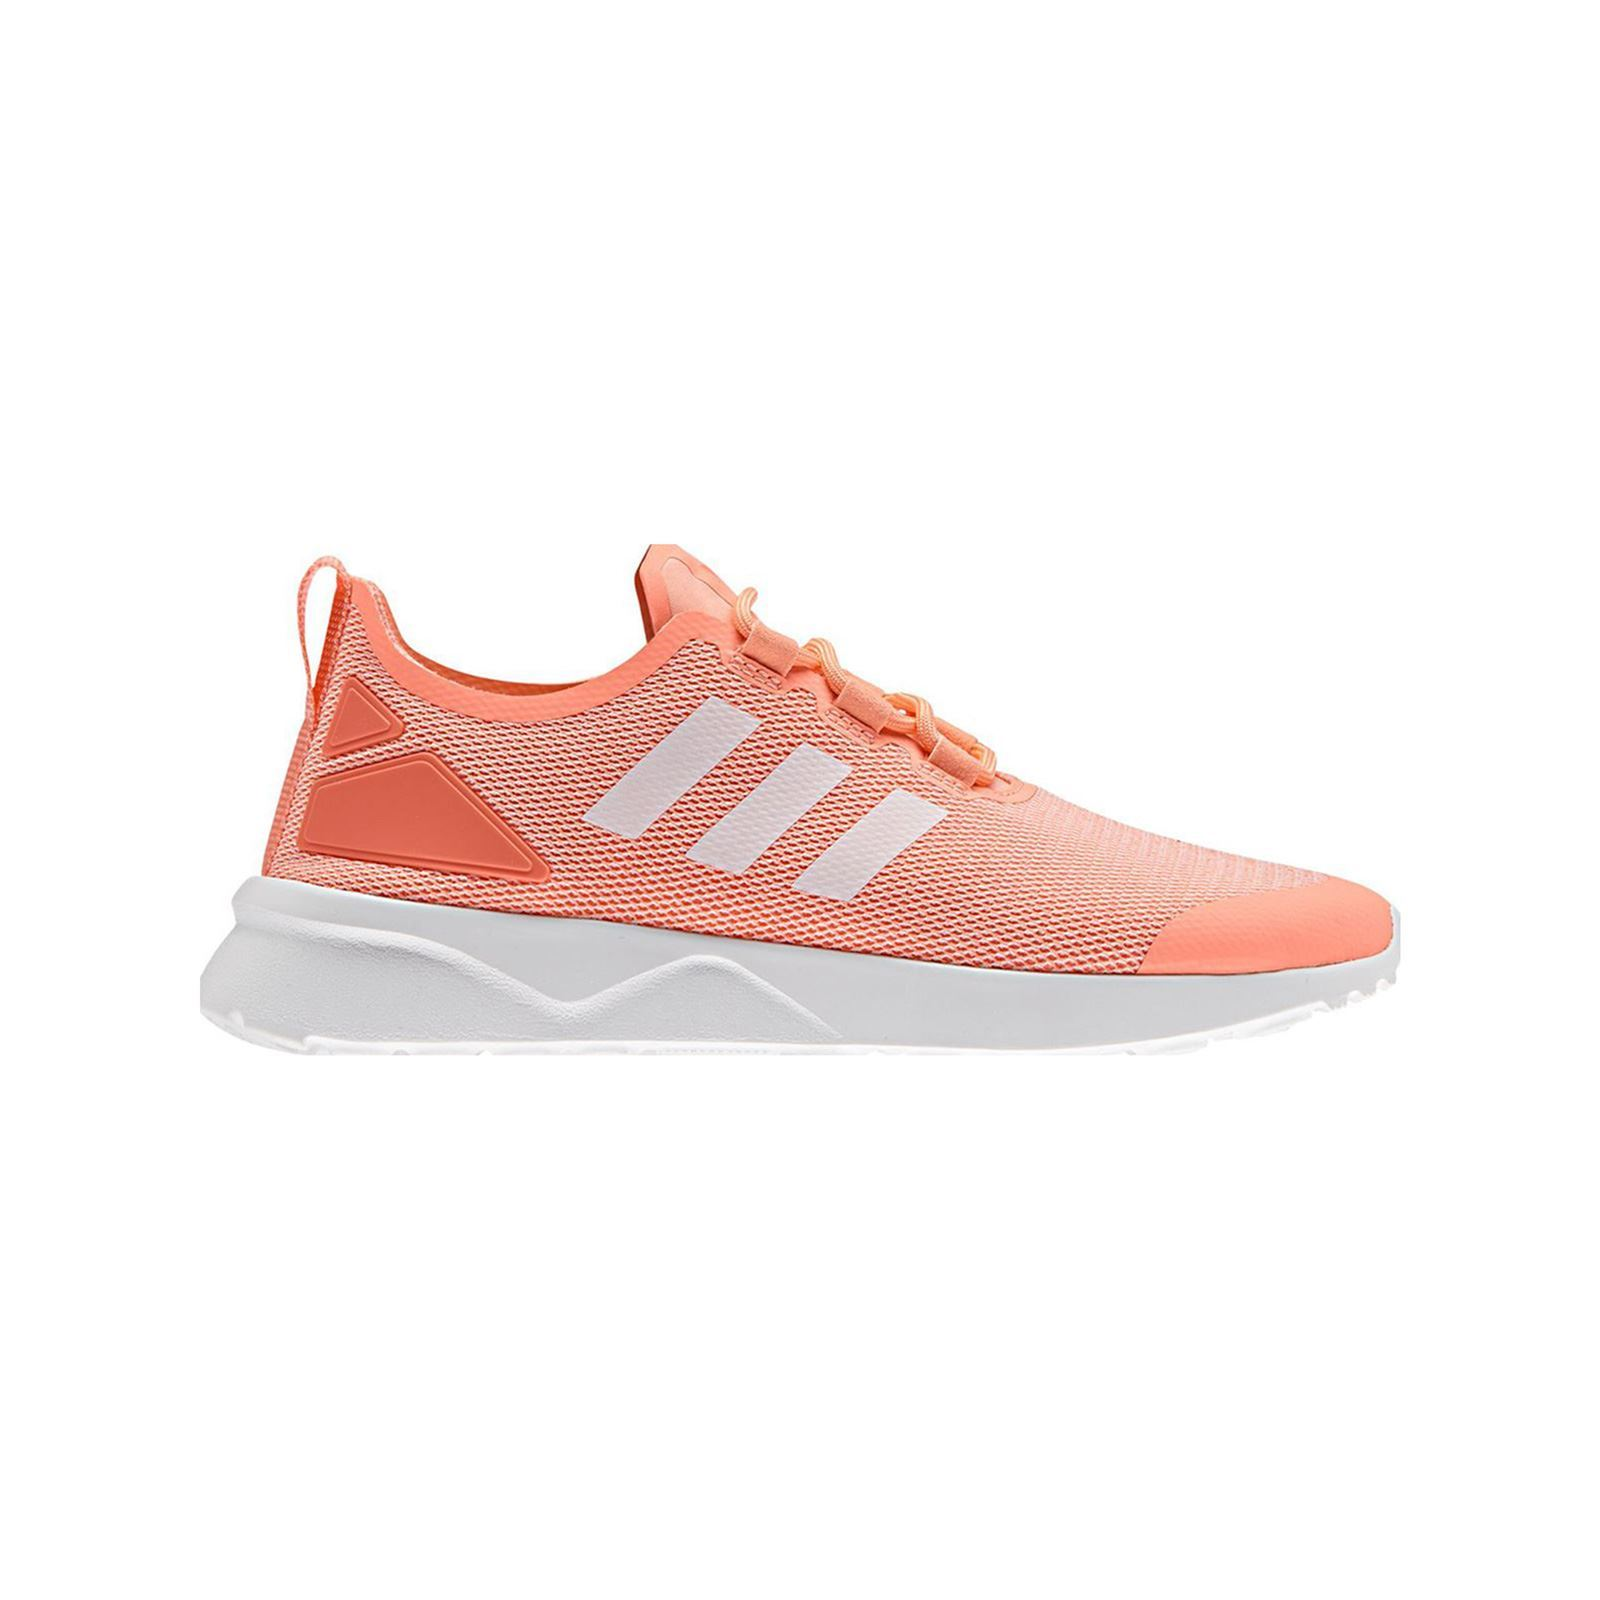 991a5d9f18 adidas Originals Zx Flux Adv Verve W - Low Sneakers - orange ...